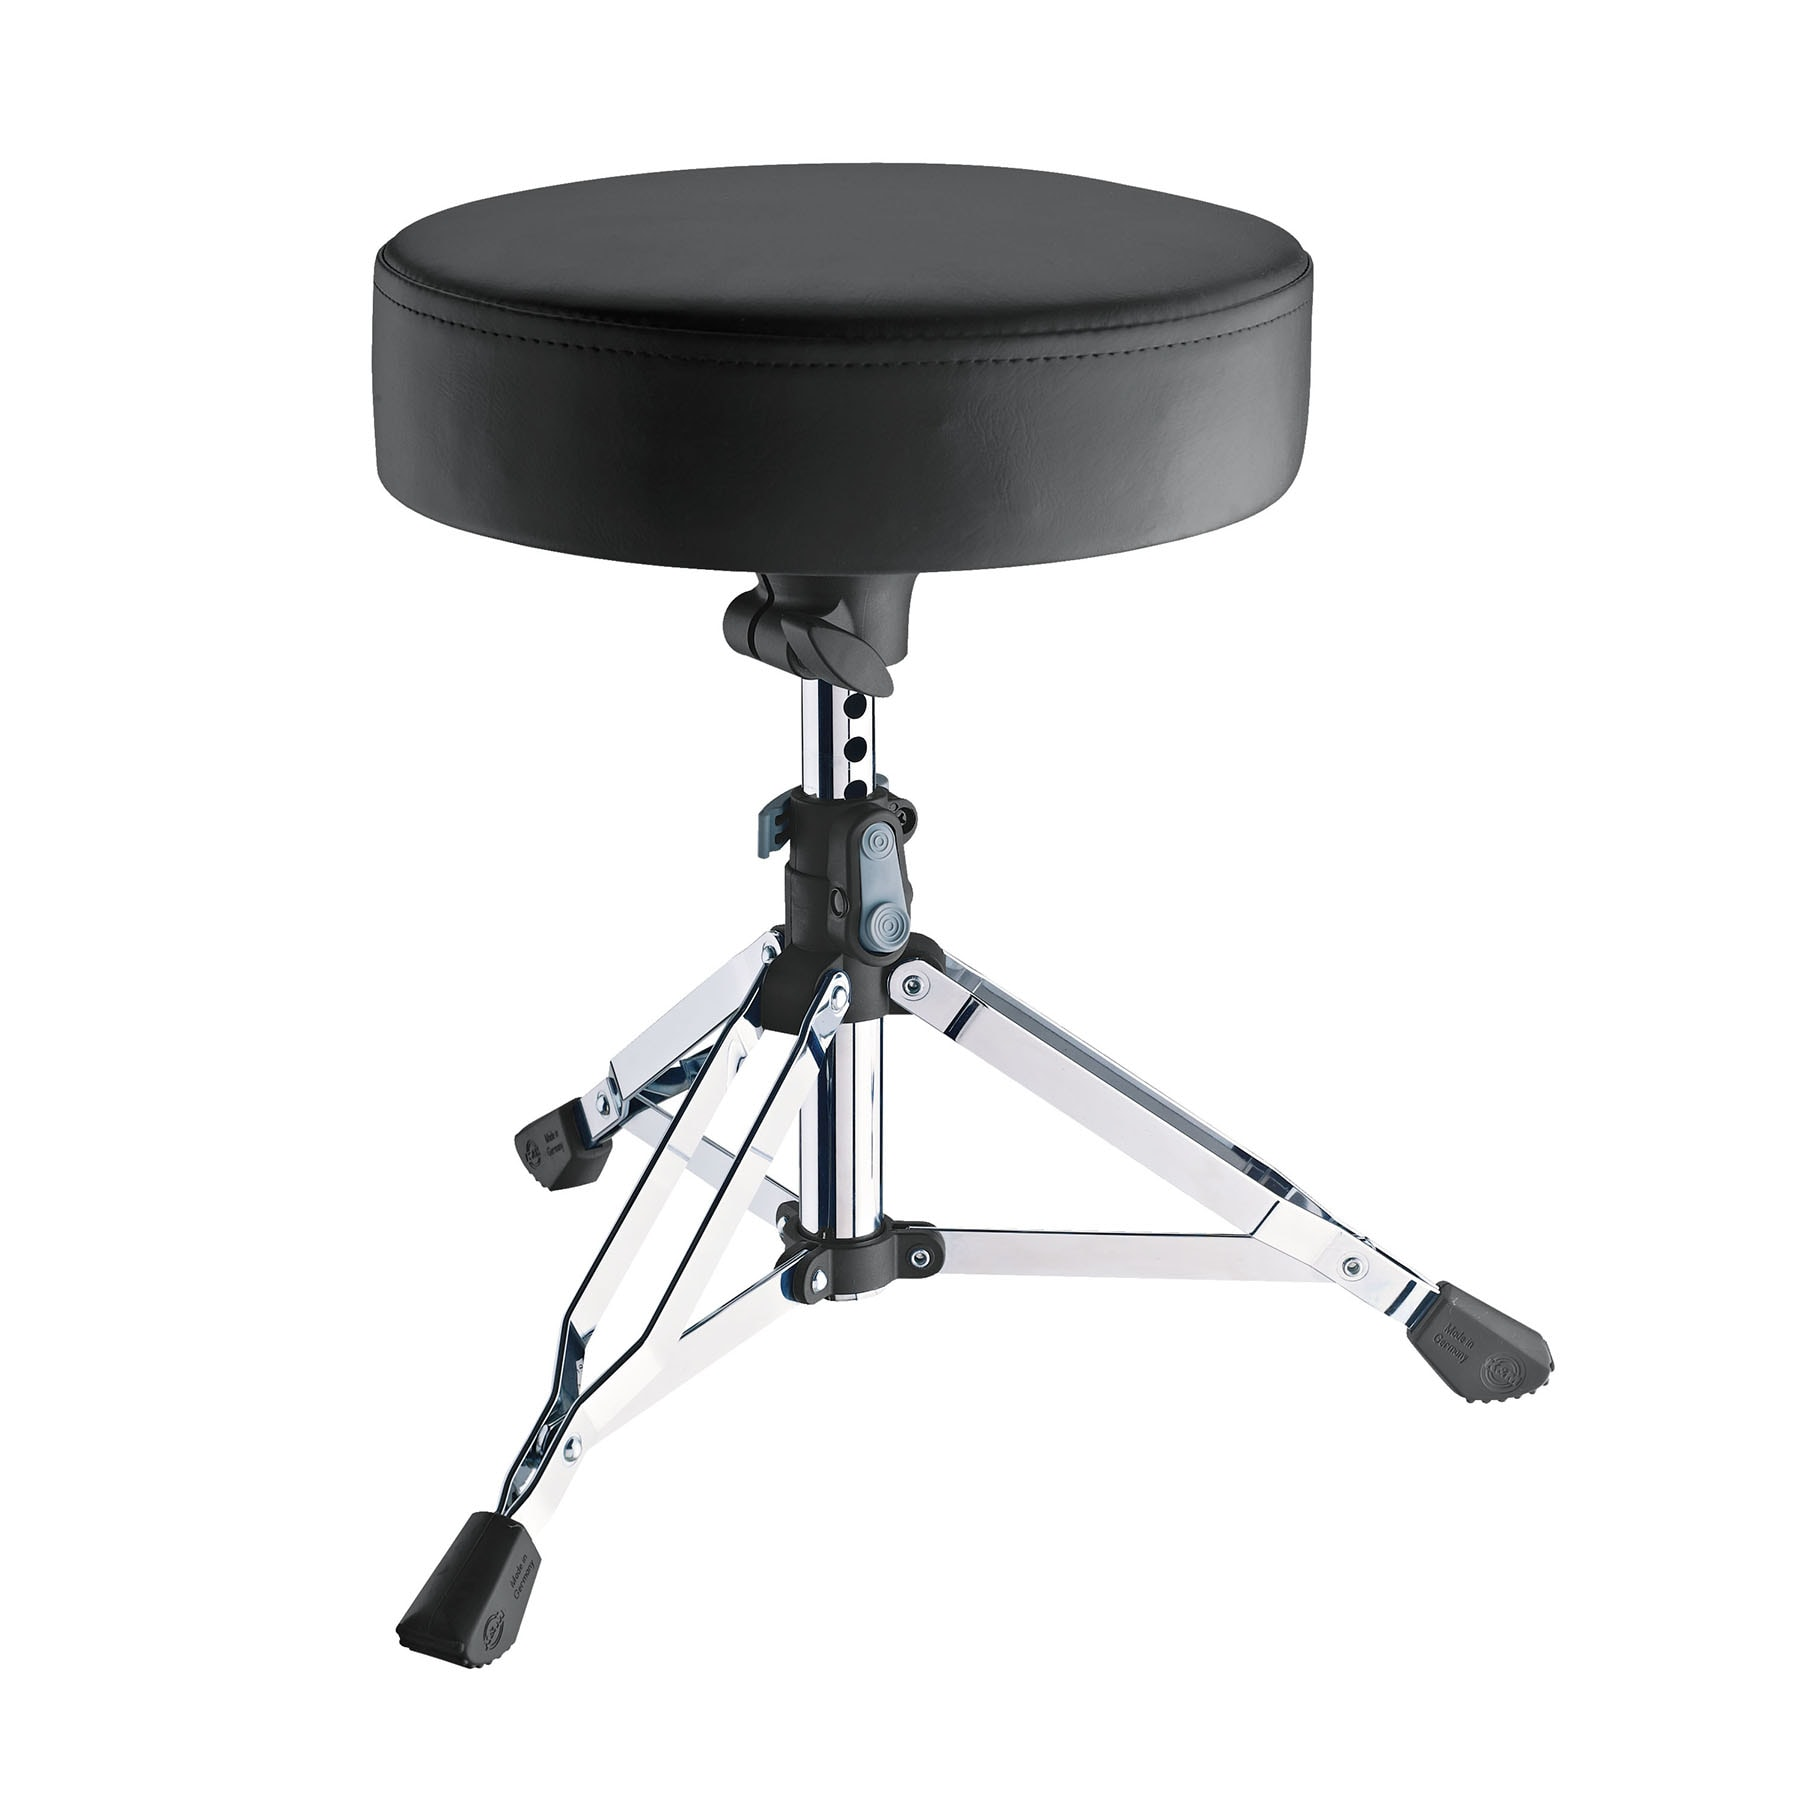 KM14010 - Drummer's throne »piccolino«